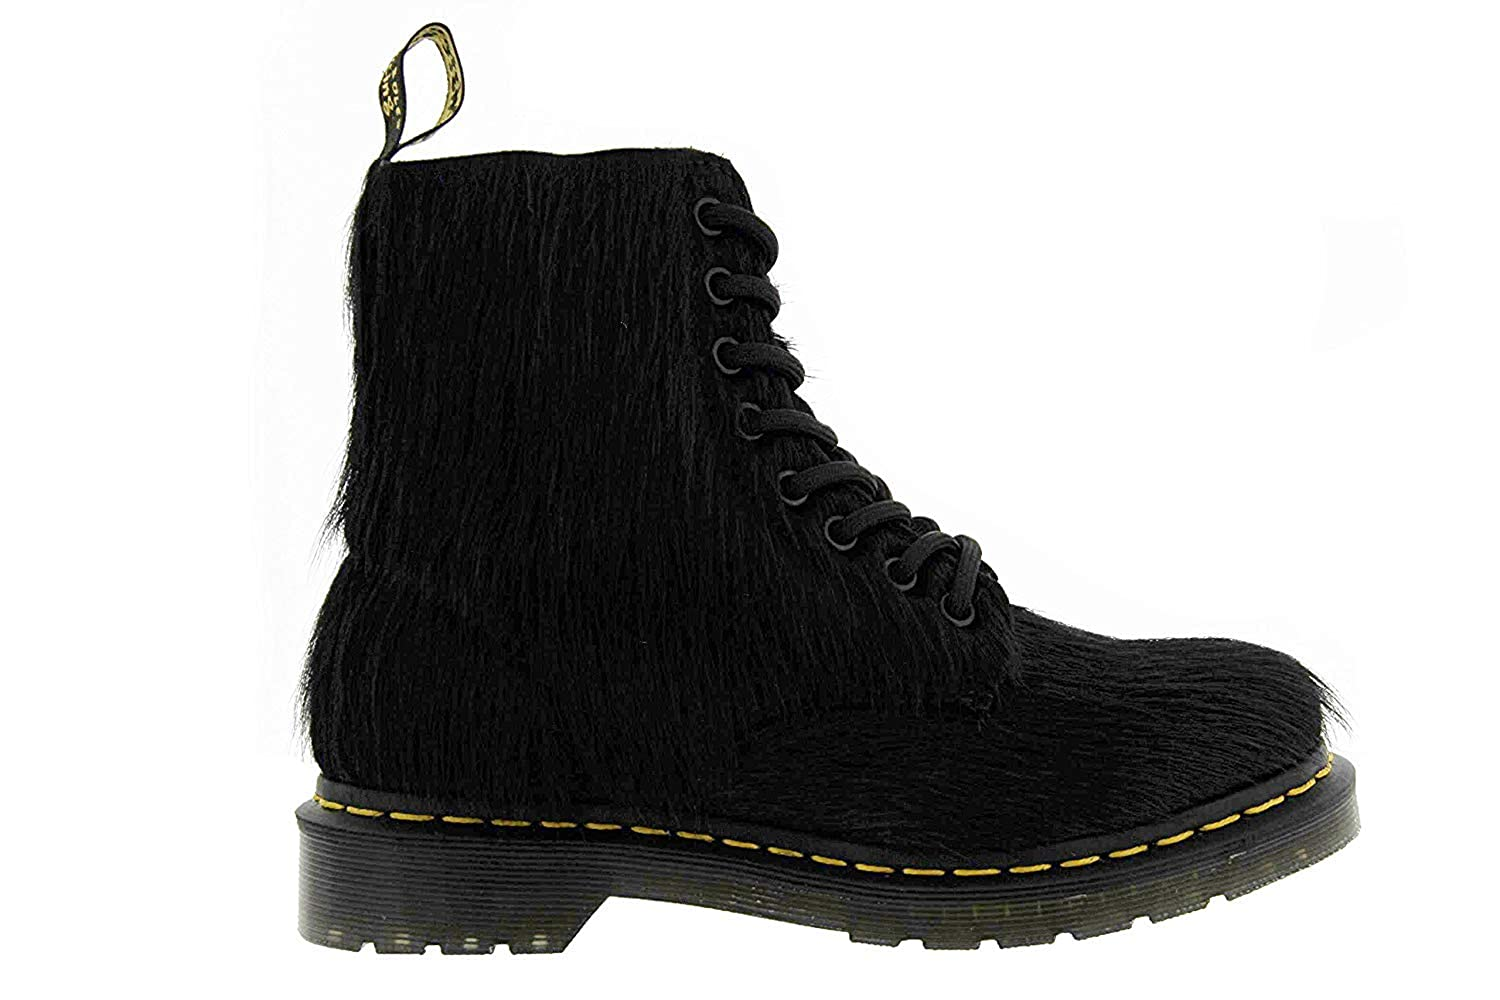 brand new 82060 bcd19 Amazon.com   Dr. Martens Women s 1460 8 Eye Hair Fashion Boots, Black  Leather, 4 M UK, 6 M US   Boots